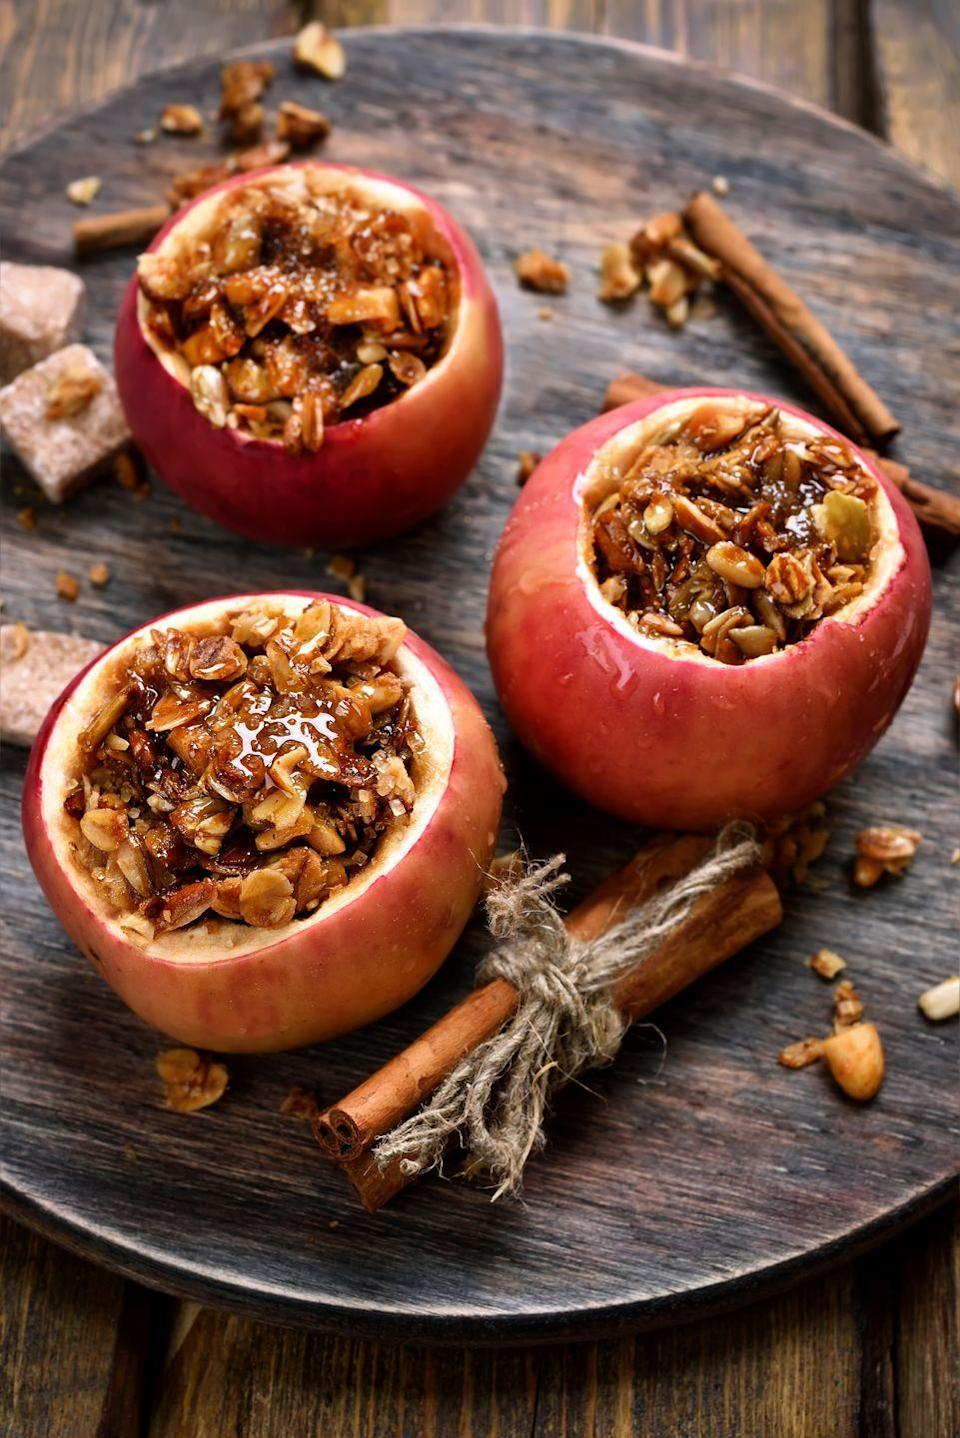 "<p>A perennial crowd-pleaser, aromatic baked apples, stuffed with spices and a cranberry granola filling, can be prepared in advance and then baked as your family enjoys dinner.</p><p><strong><a href=""https://www.countryliving.com/food-drinks/recipes/a1300/cranberry-granola-spiced-apples-3414/"" rel=""nofollow noopener"" target=""_blank"" data-ylk=""slk:Get the recipe"" class=""link rapid-noclick-resp"">Get the recipe</a>.</strong></p>"